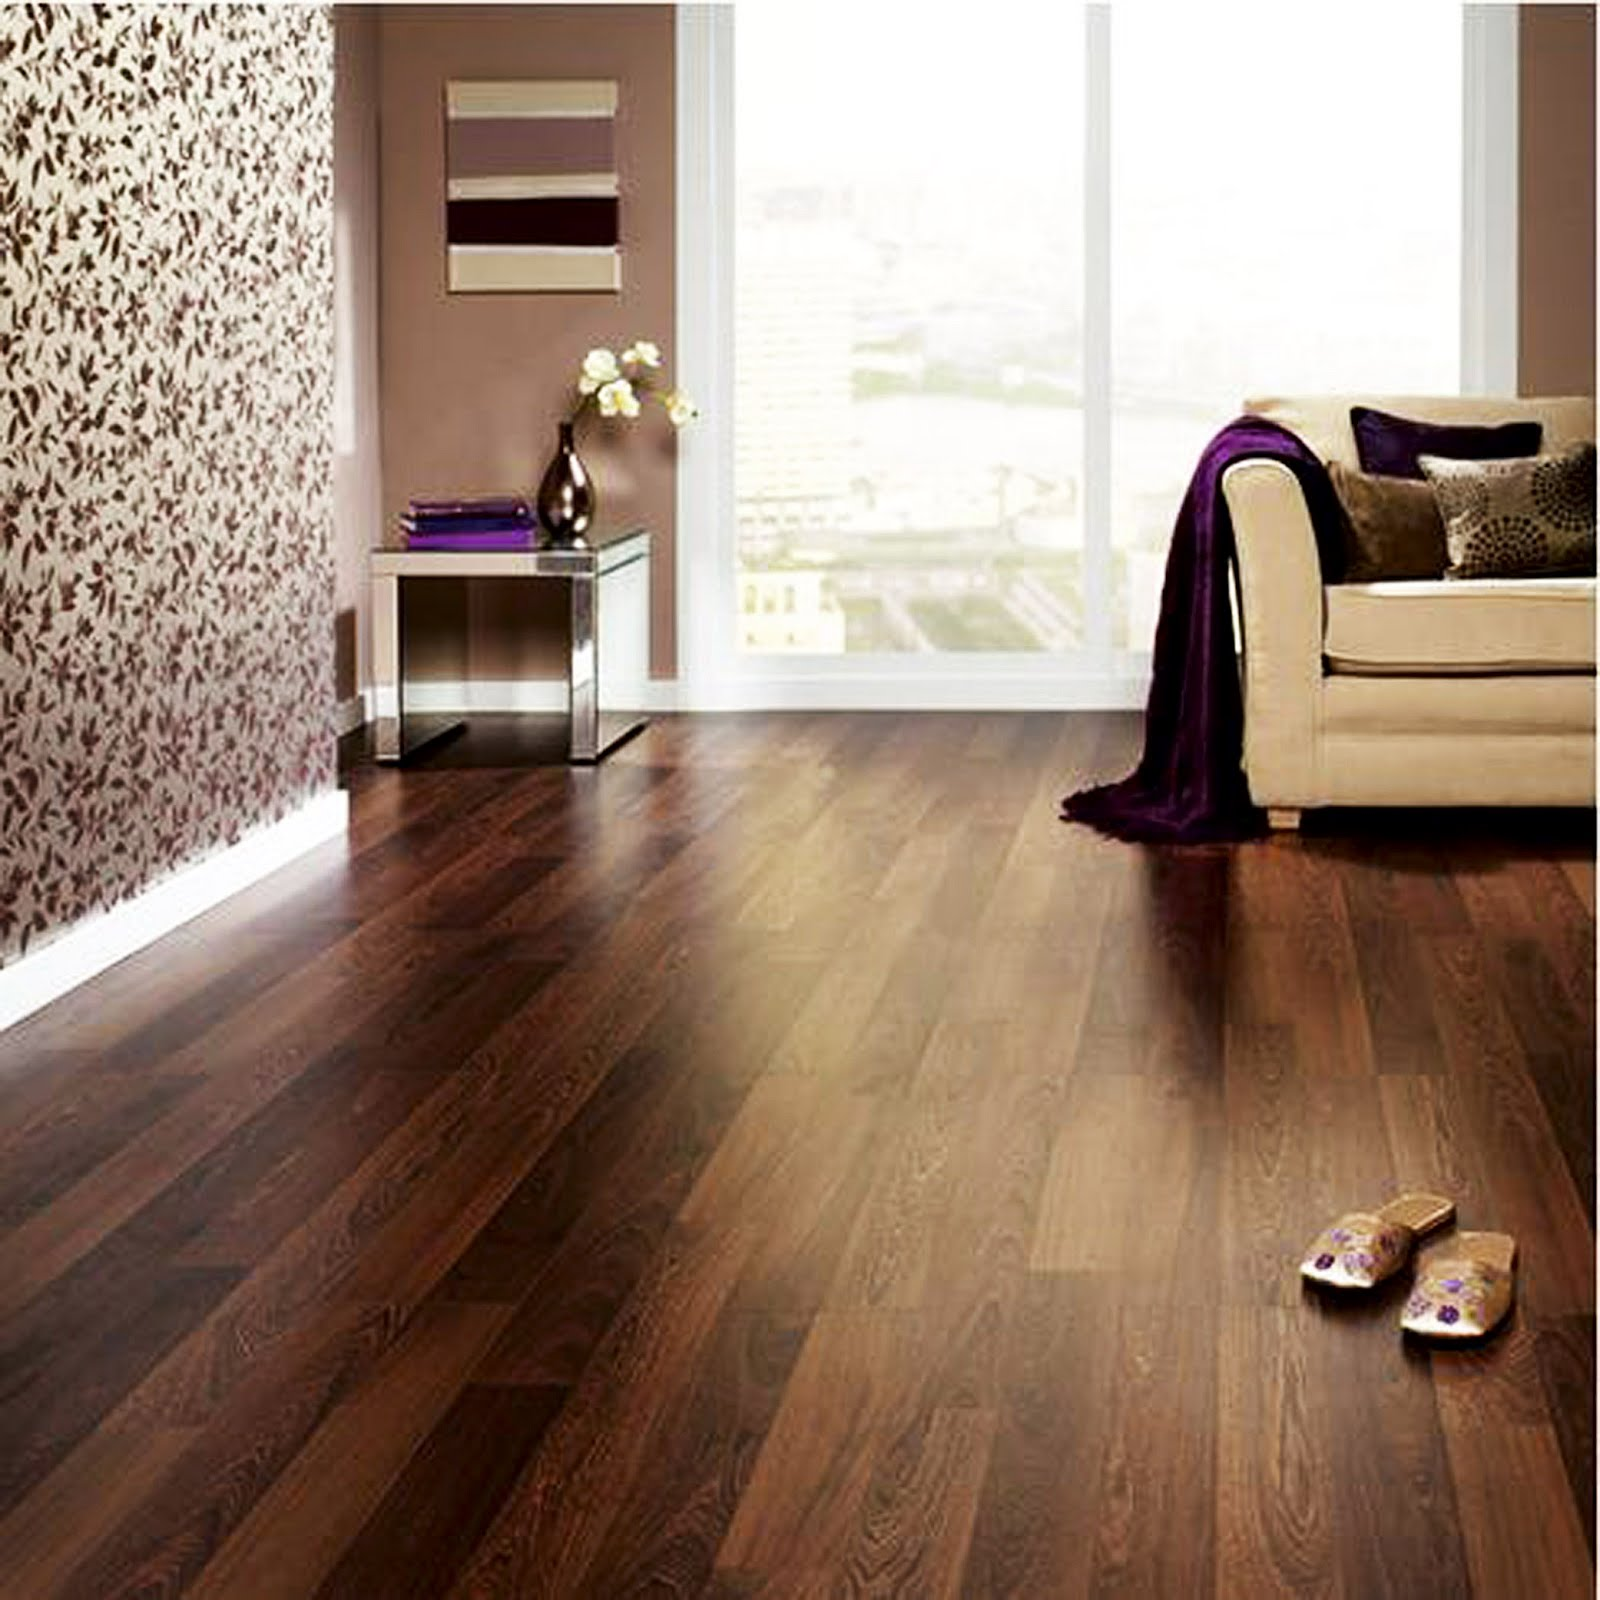 Choosing laminate floor a buyers guide swift carpets - Laminate or wood flooring ...